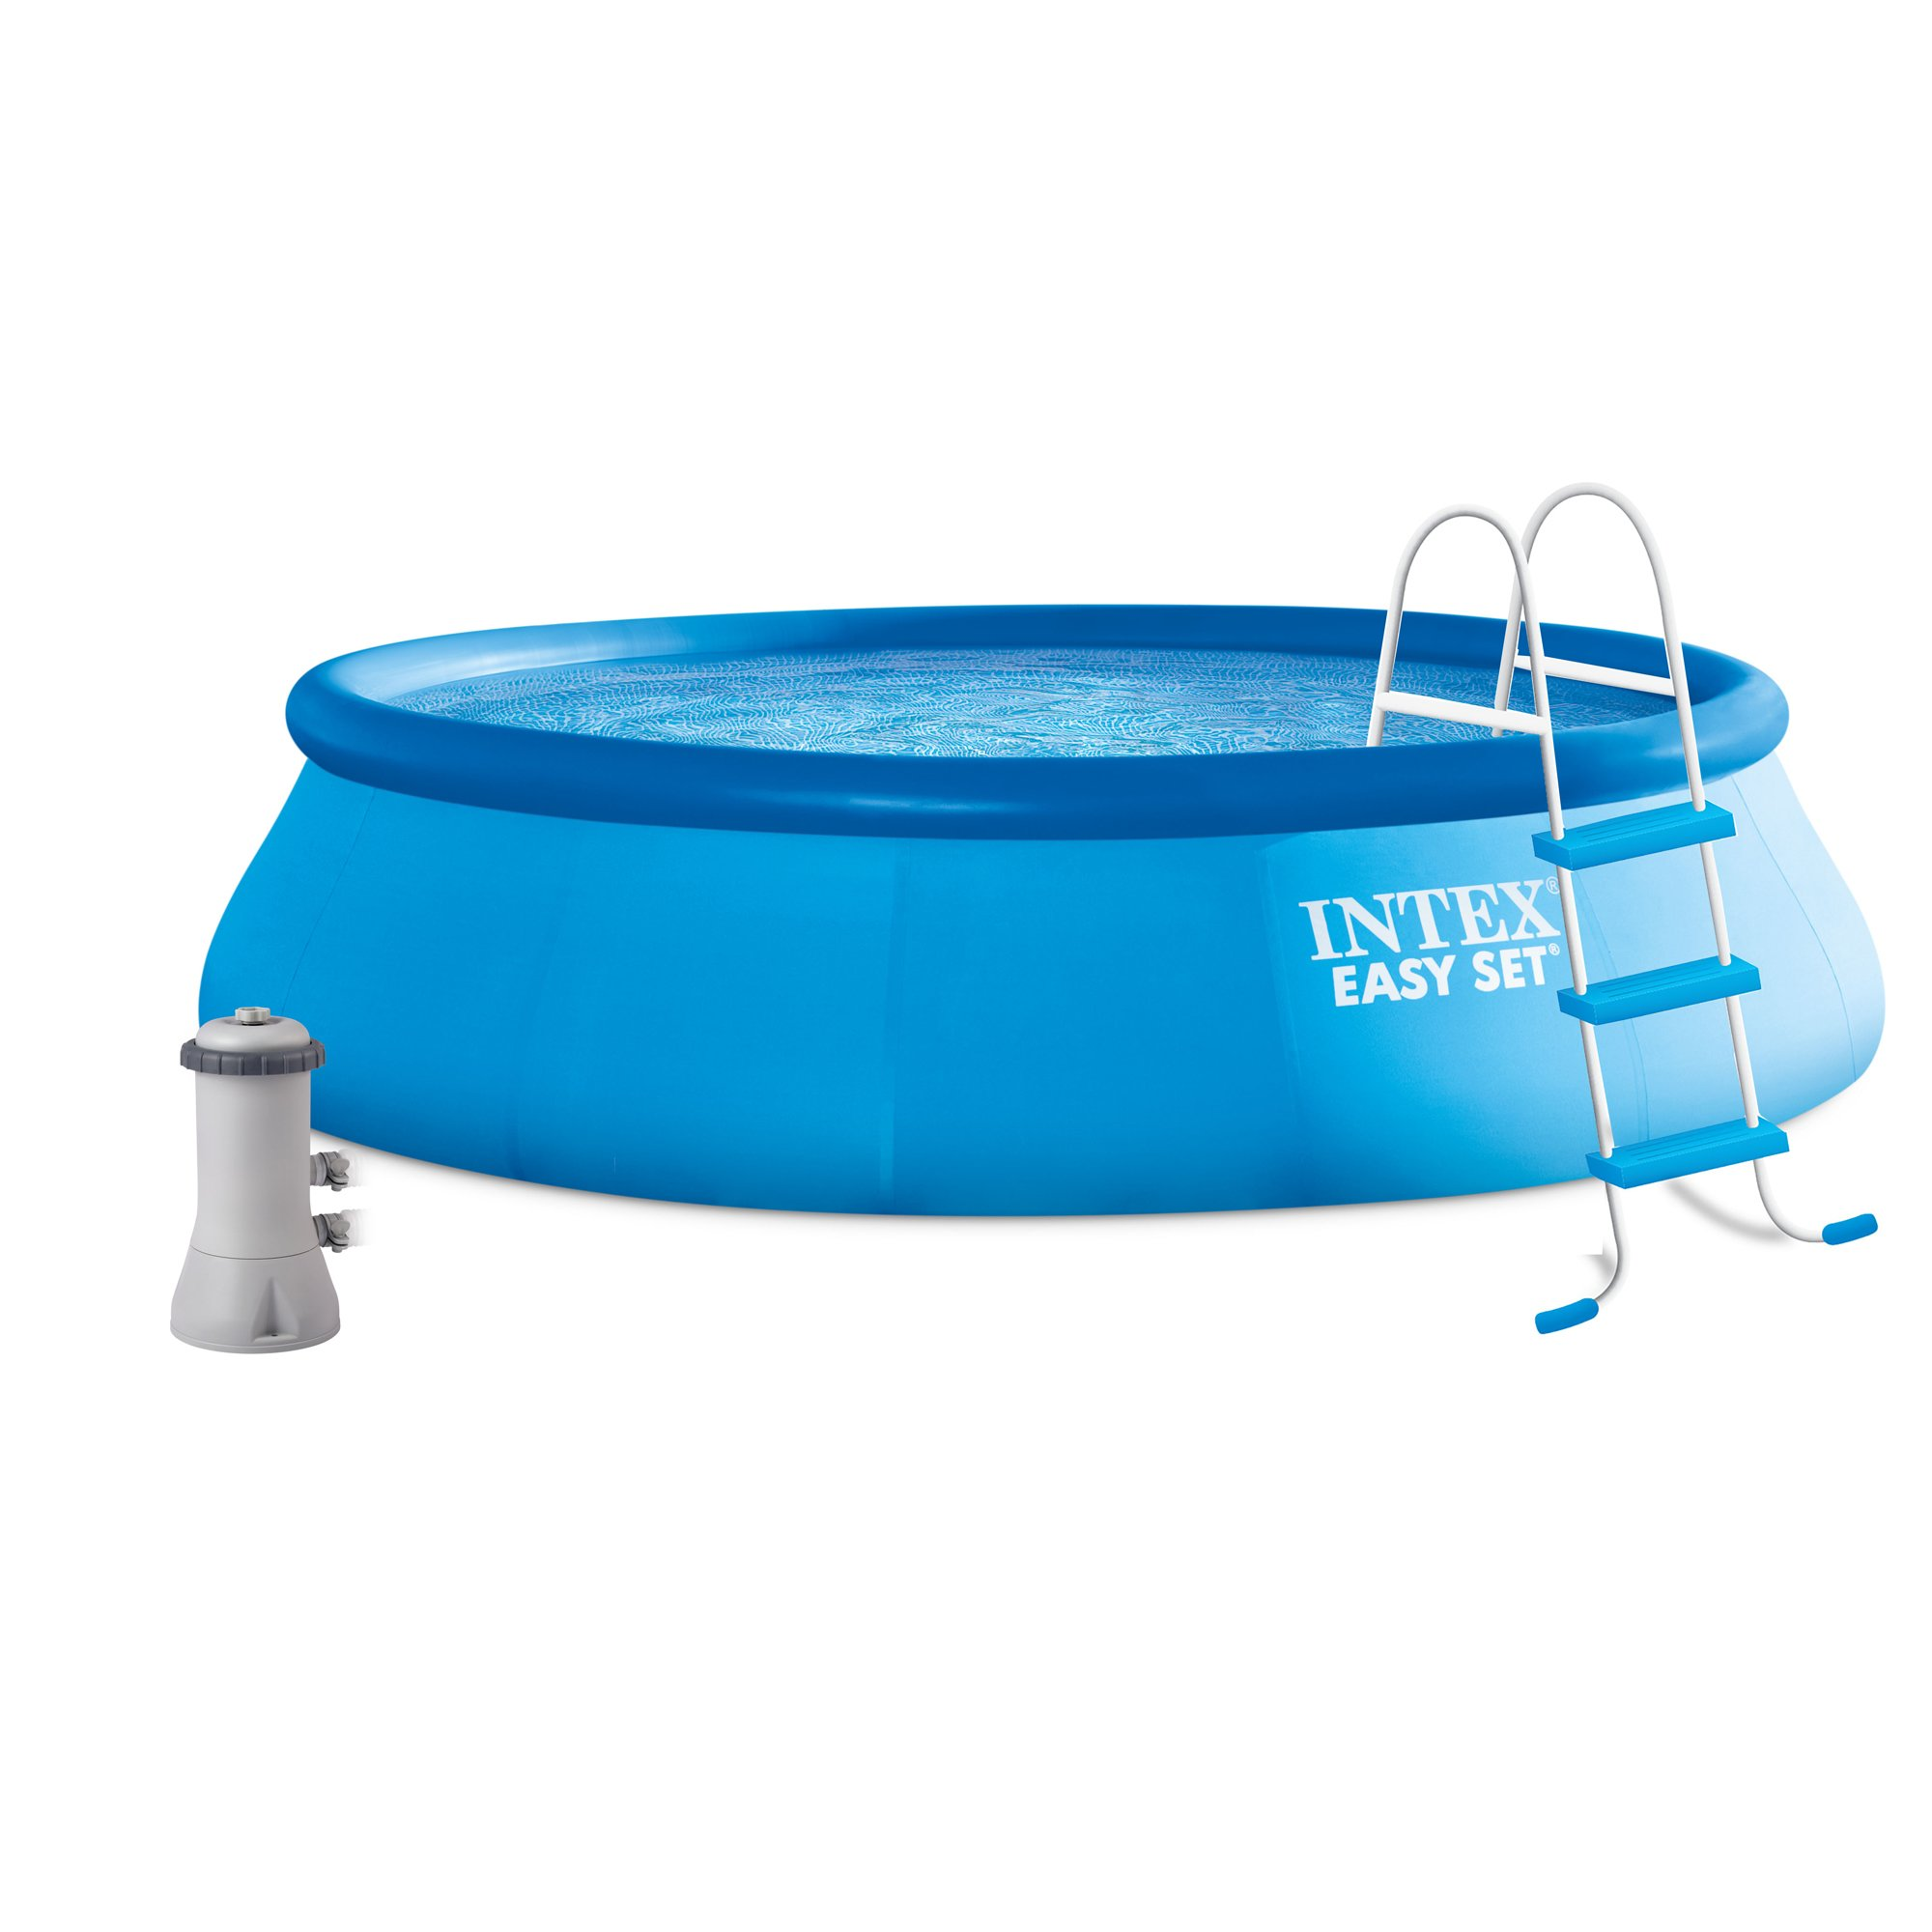 Intex 16' x 42'' Easy Set Above Ground Swimming Pool Kit w/ Filter Pump & Ladder